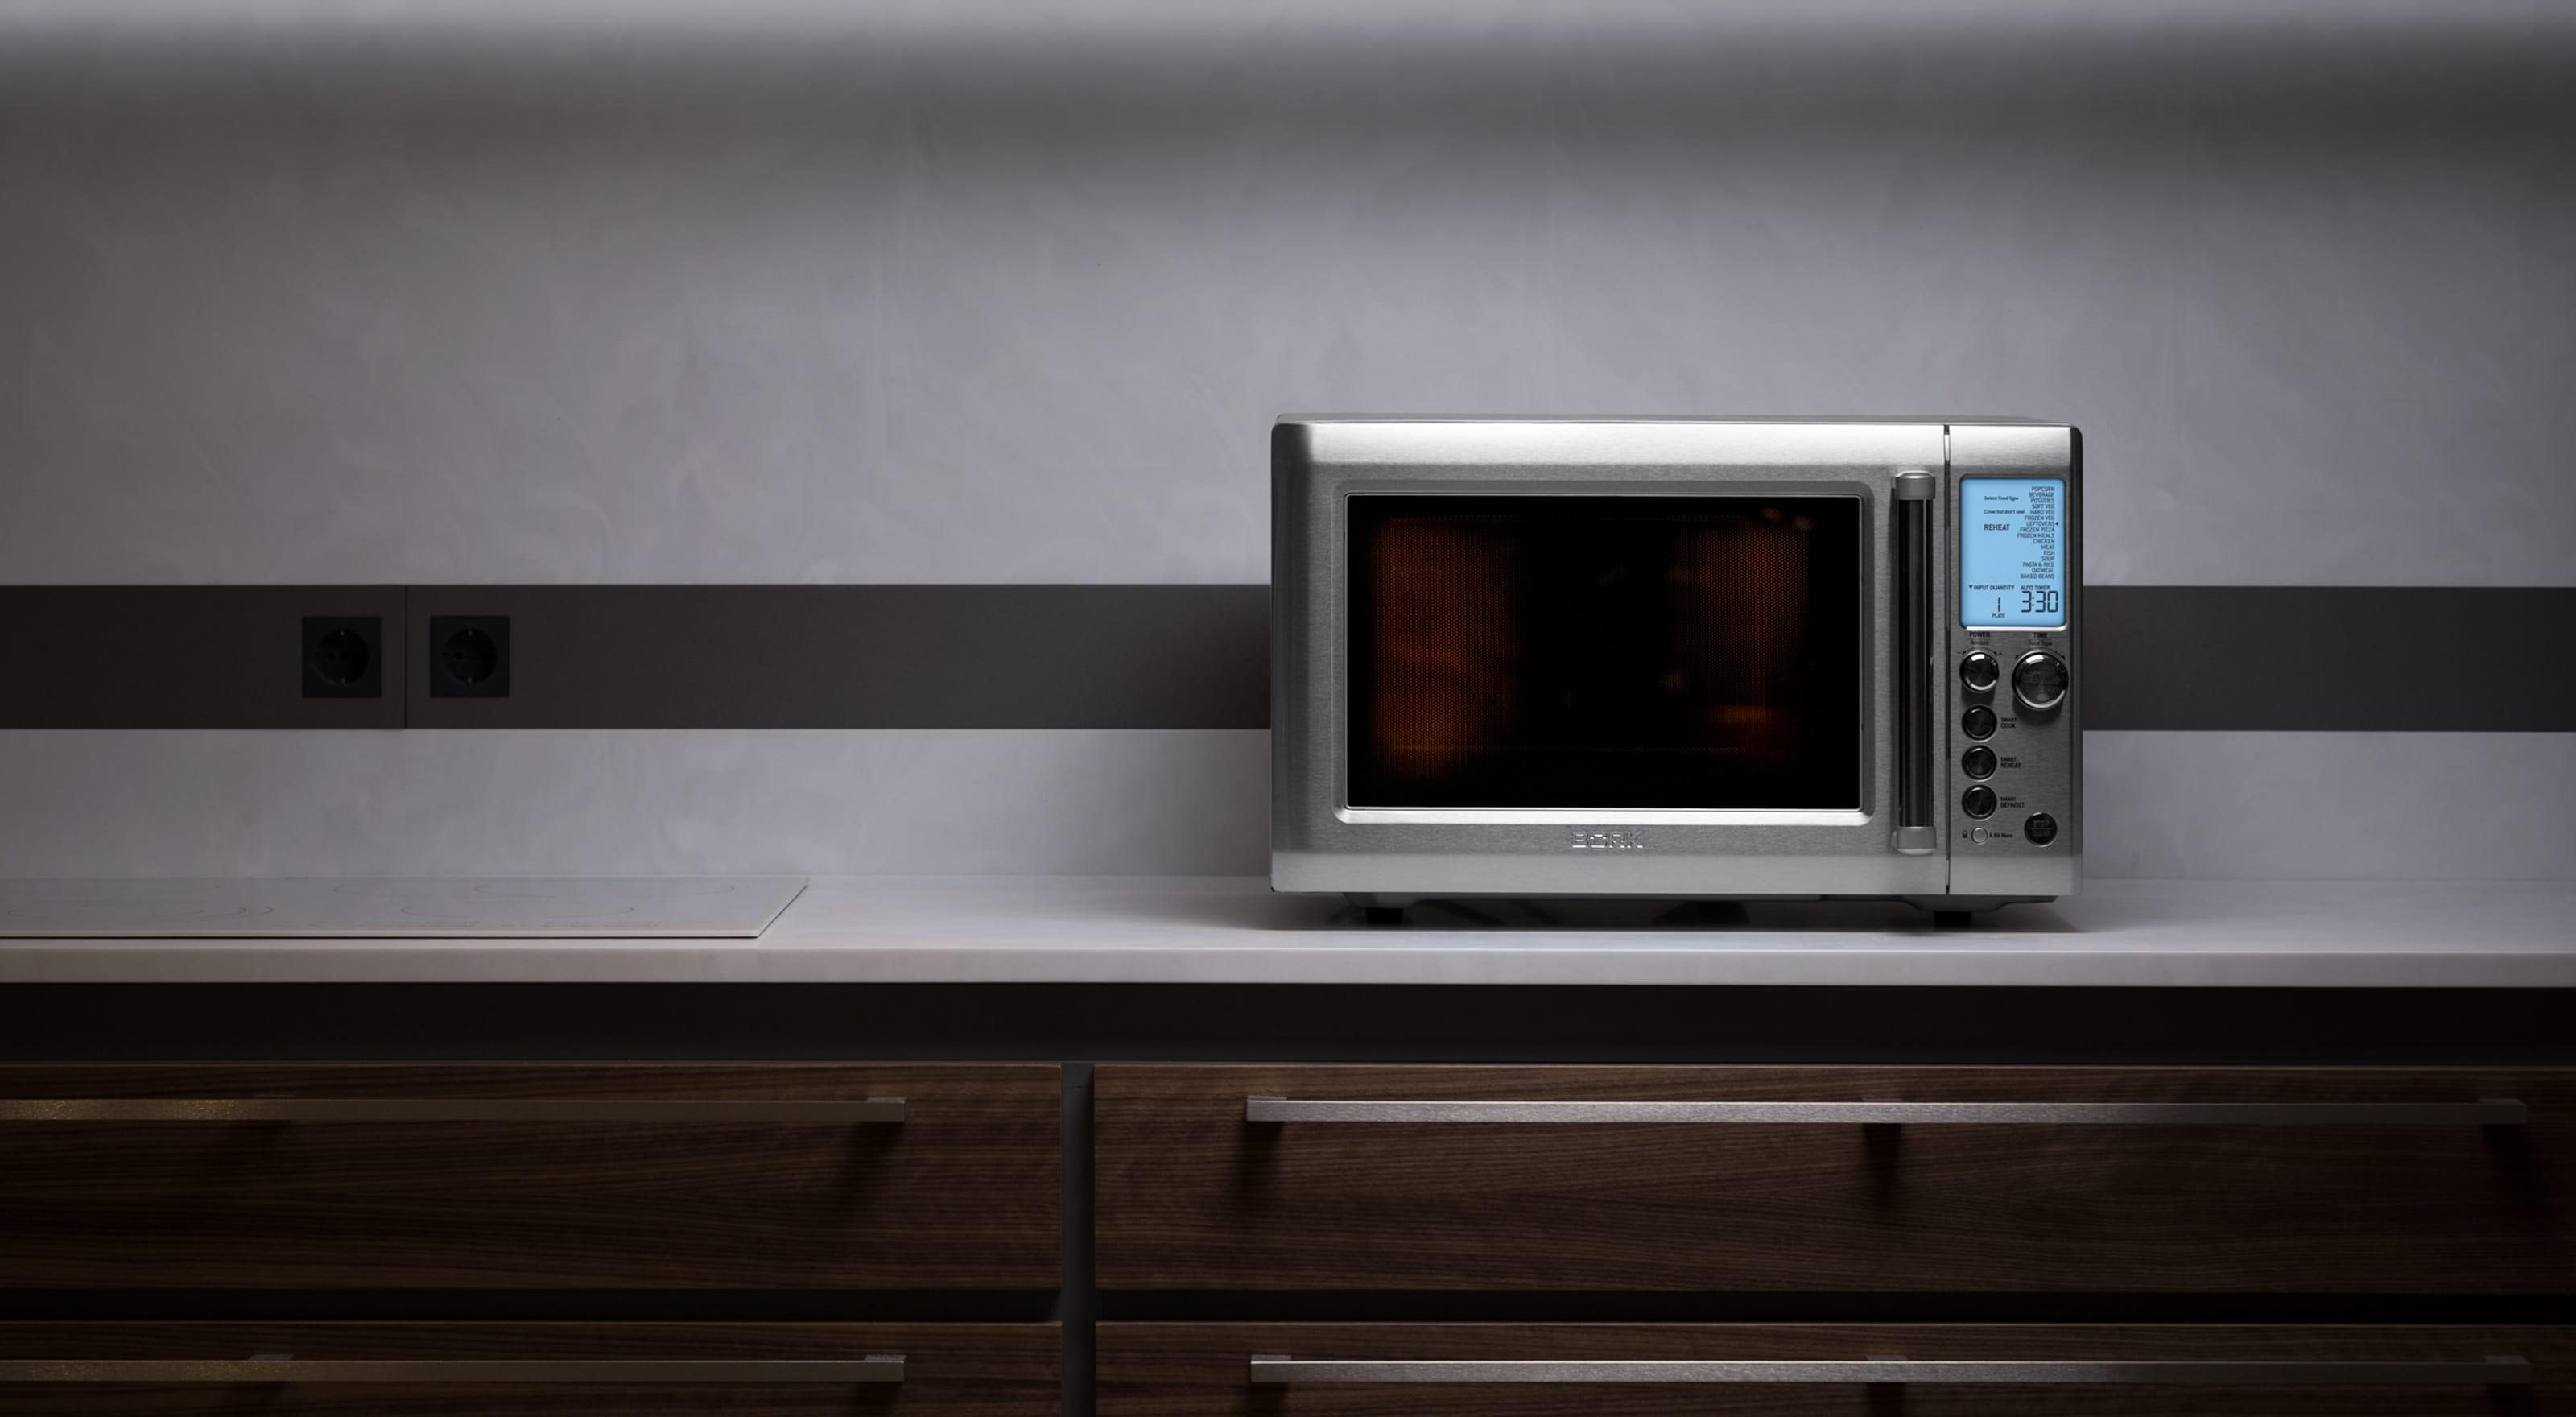 Overview of the microwave oven Bork W521